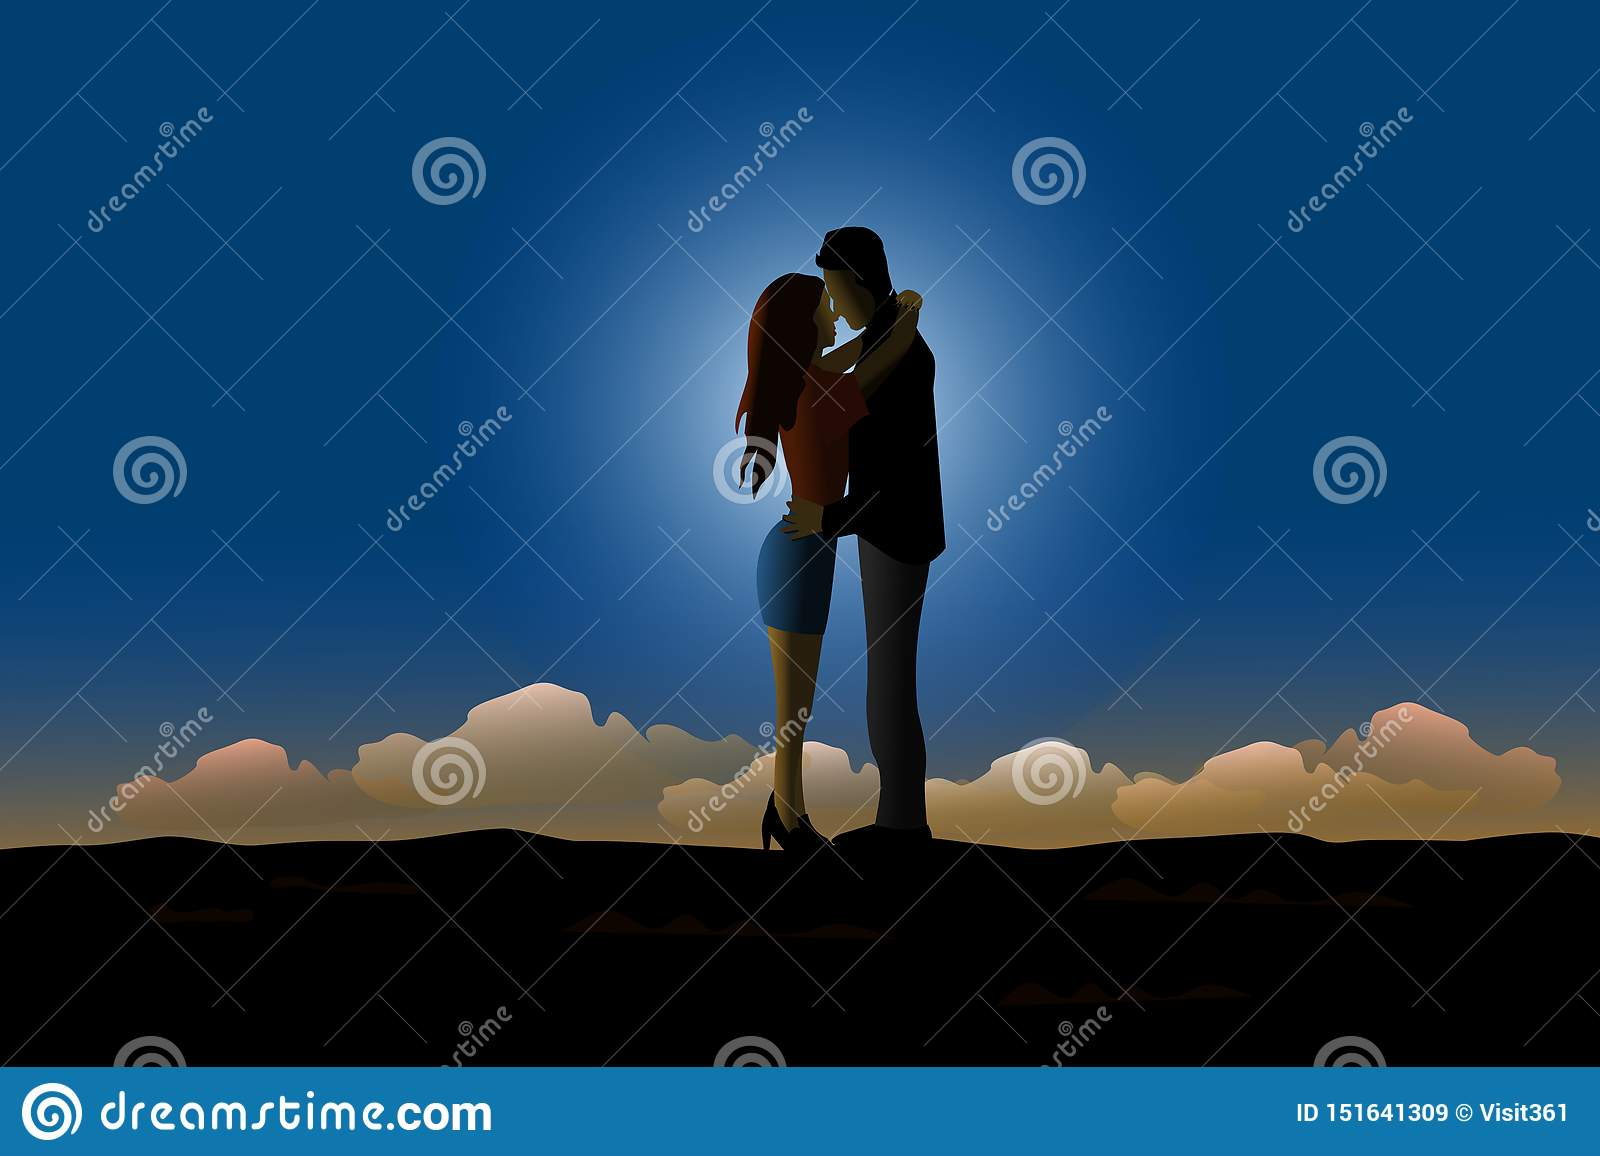 Silhouette of the couple is kissing on the hilltop. With moonlight and blue sky background